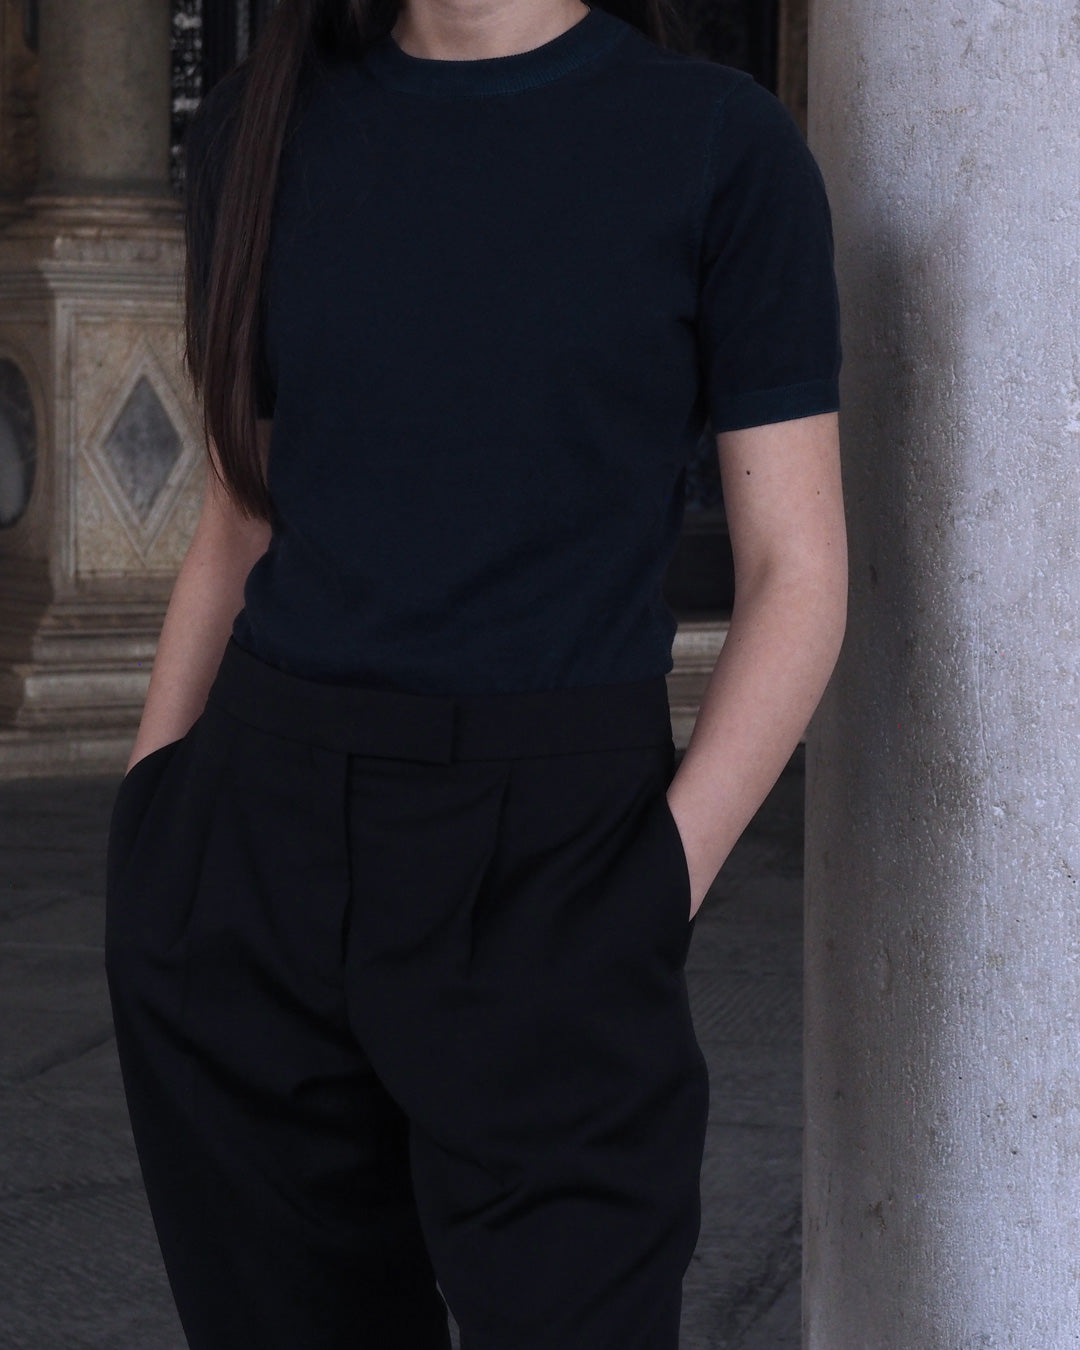 @sandrarossi03 in Soft Plated Knit + Single-Pleat Trouser from The Organic Collection.